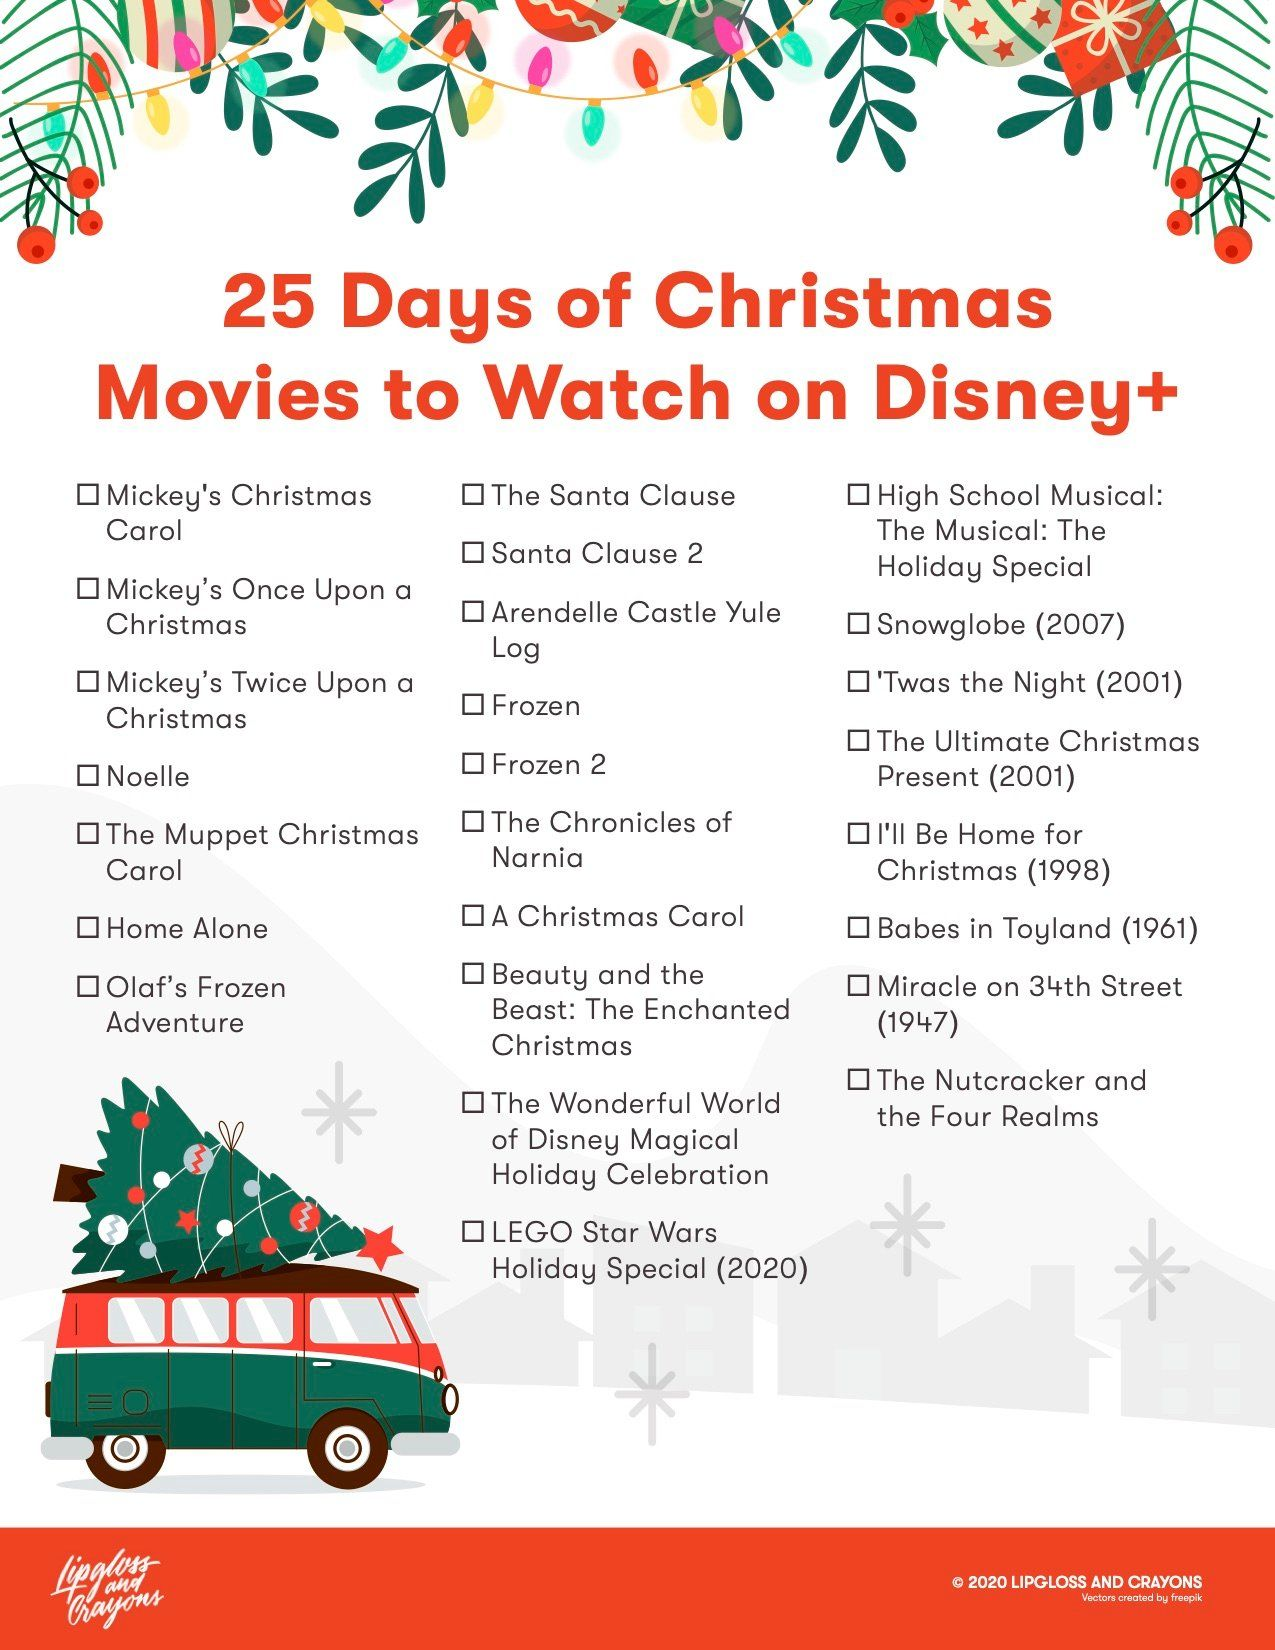 25 Days Of Christmas Disney The Ultimate Watch Guide Lipgloss And Crayons In 2020 Mickey Christmas Disney Christmas 25 Days Of Christmas